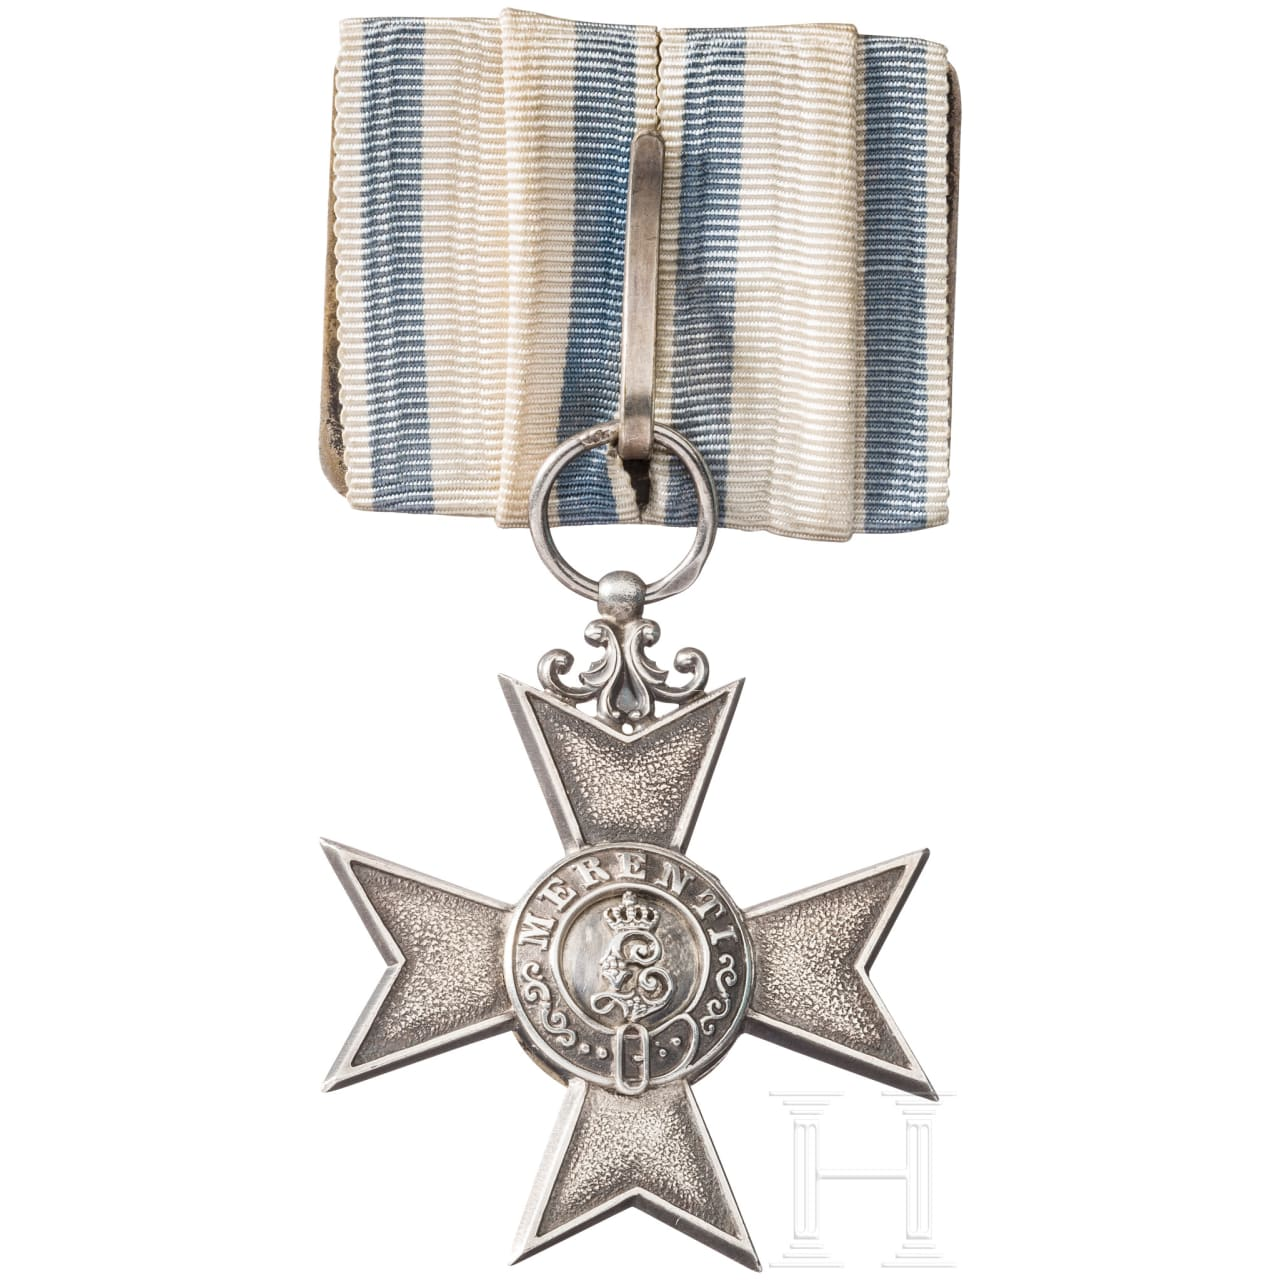 Military Merit Cross 2nd class in silver